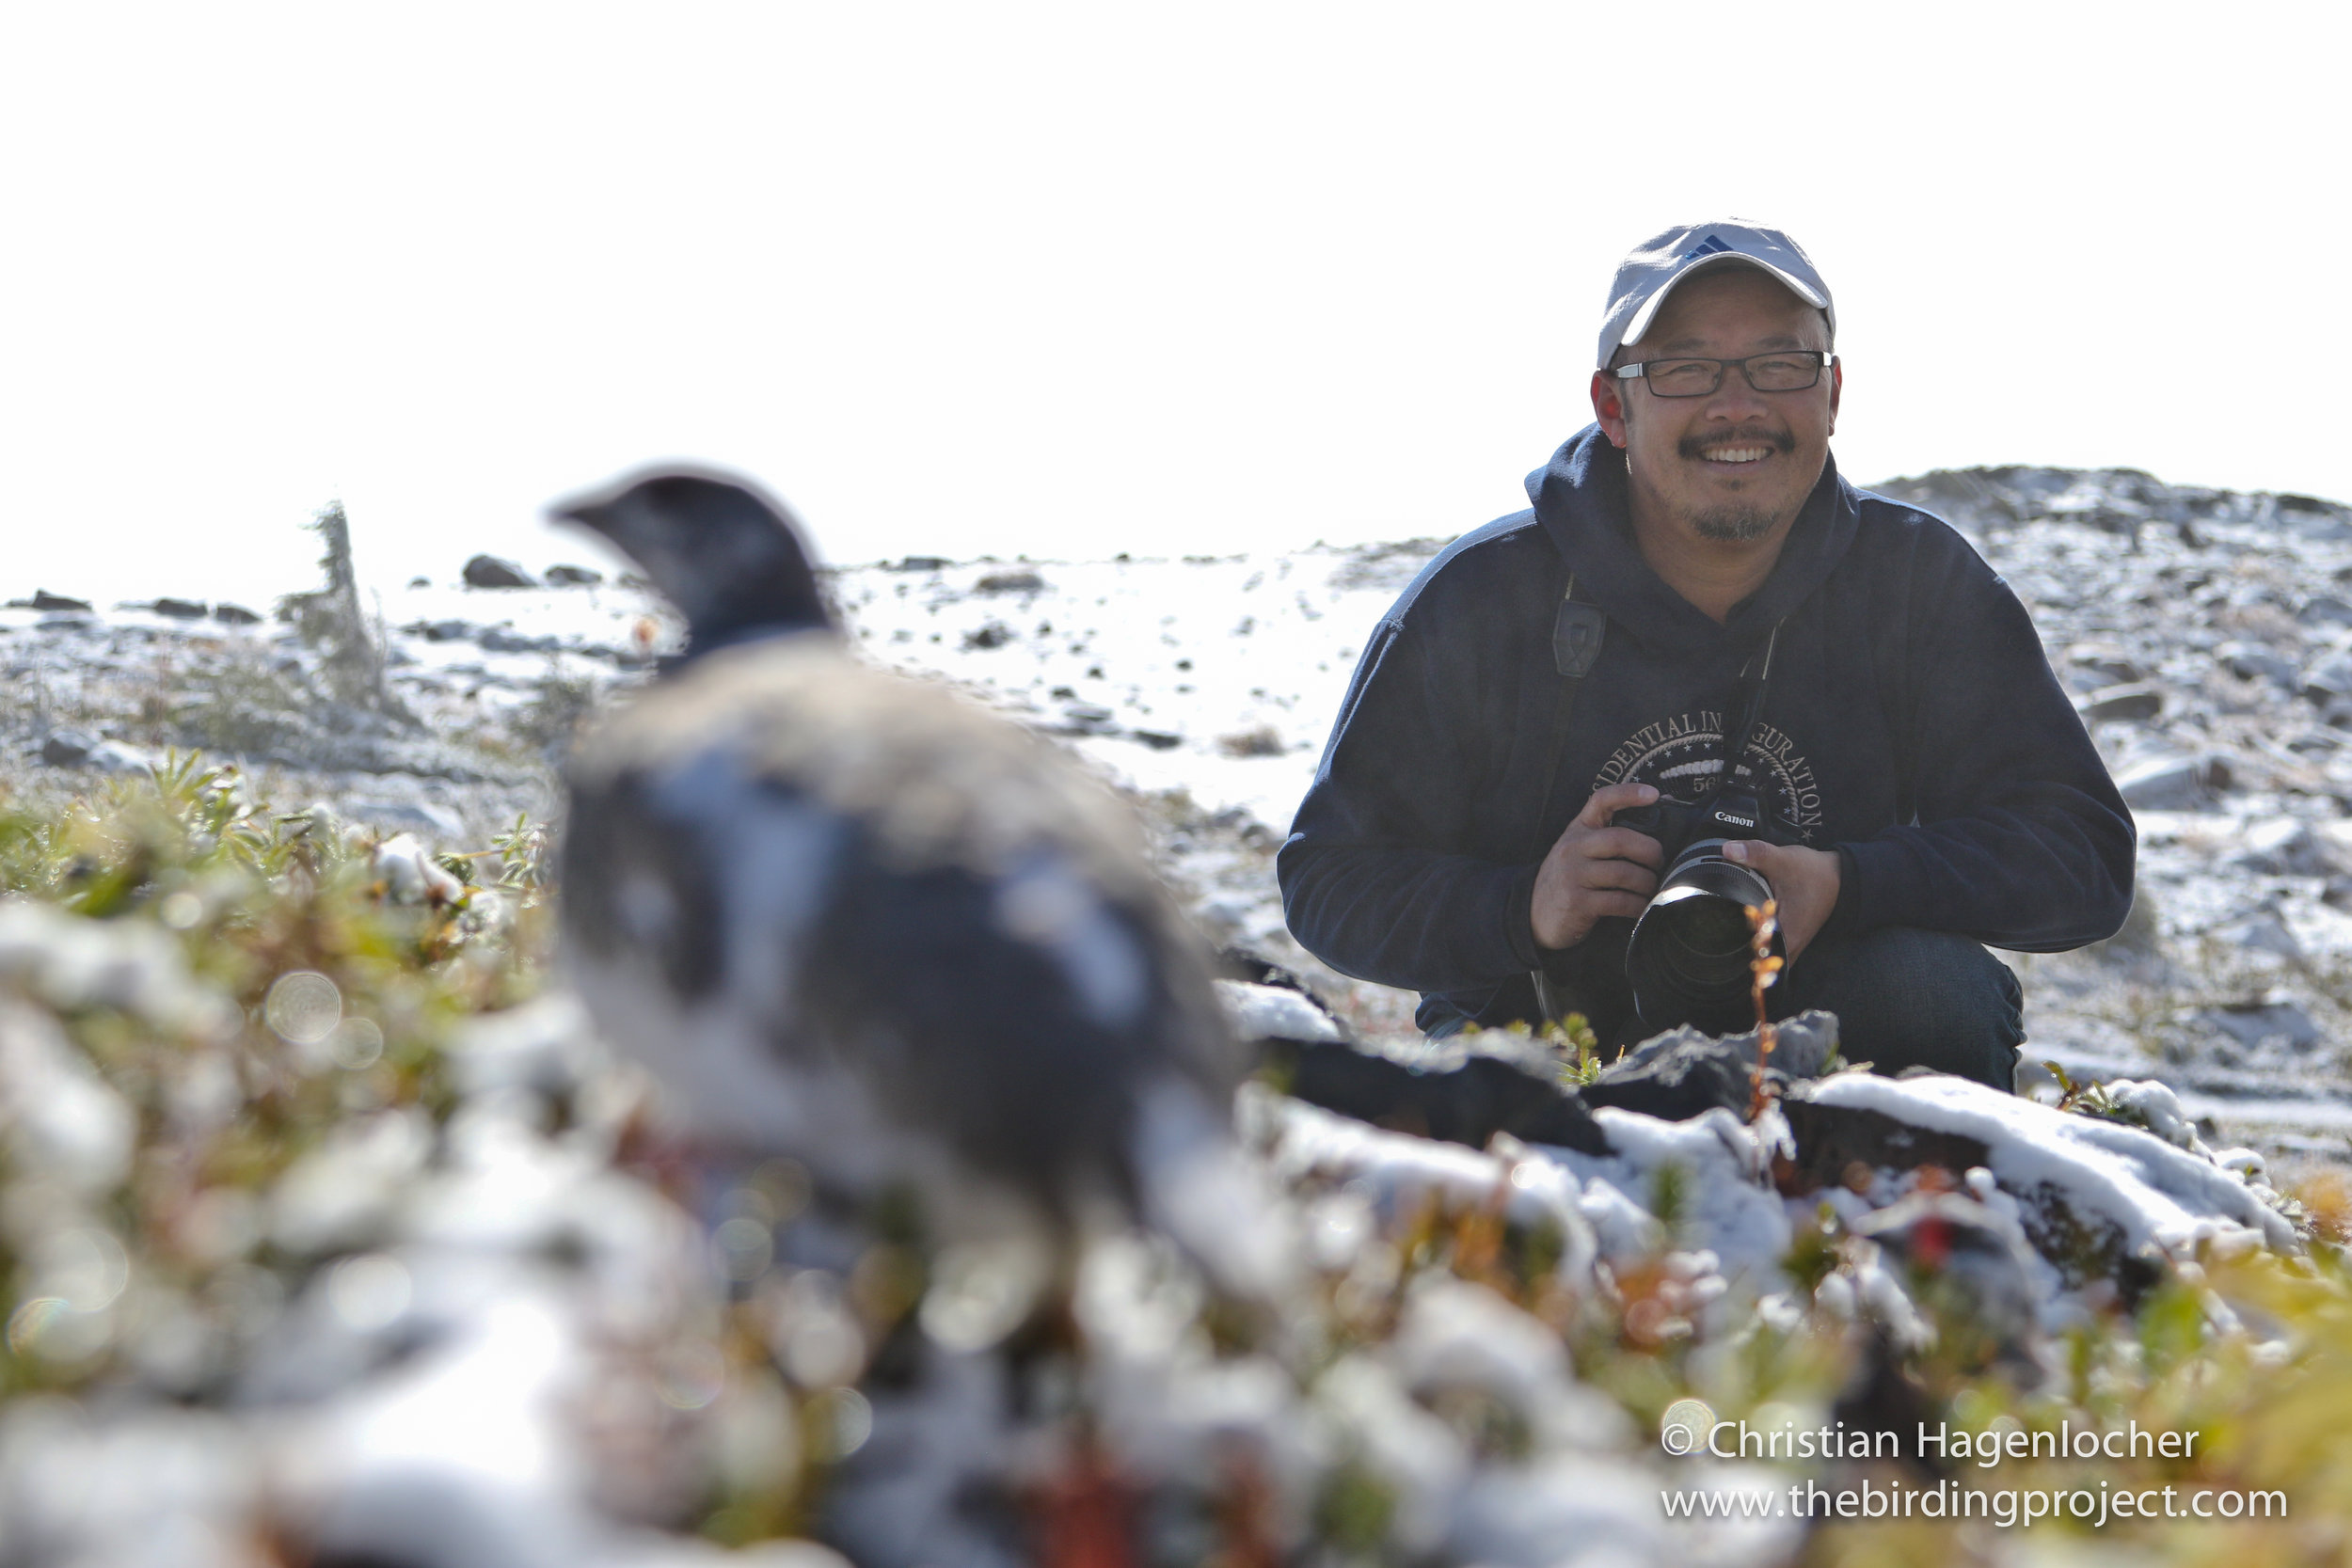 Khanh with a White-tailed Ptarmigan on Mt. Rainier. We saw three on our trip up above treeline on the snow-covered slopes- a real treat! If you'd like to bird with Khanh, look him up on Facebook Tweeters, or contact The Birding Project!